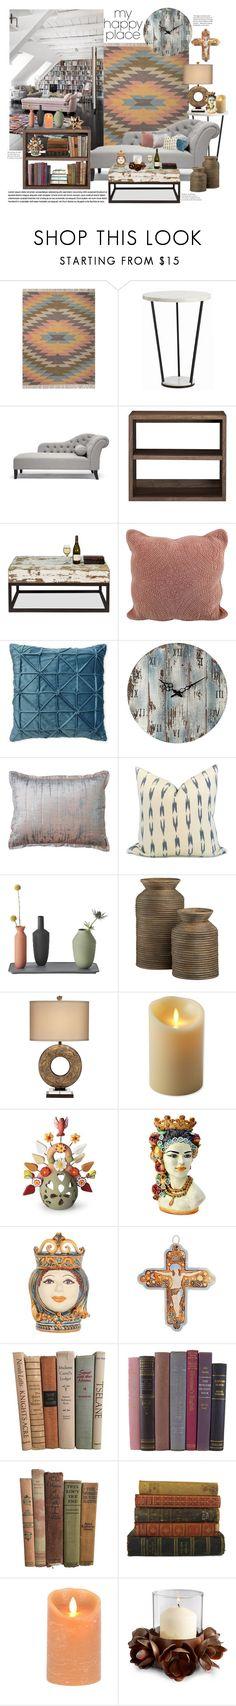 """""""Happy Place"""" by mmk2k ❤ liked on Polyvore featuring interior, interiors, interior design, home, home decor, interior decorating, Crate and Barrel, Dot & Bo, Lush Décor and Universal Lighting and Decor"""